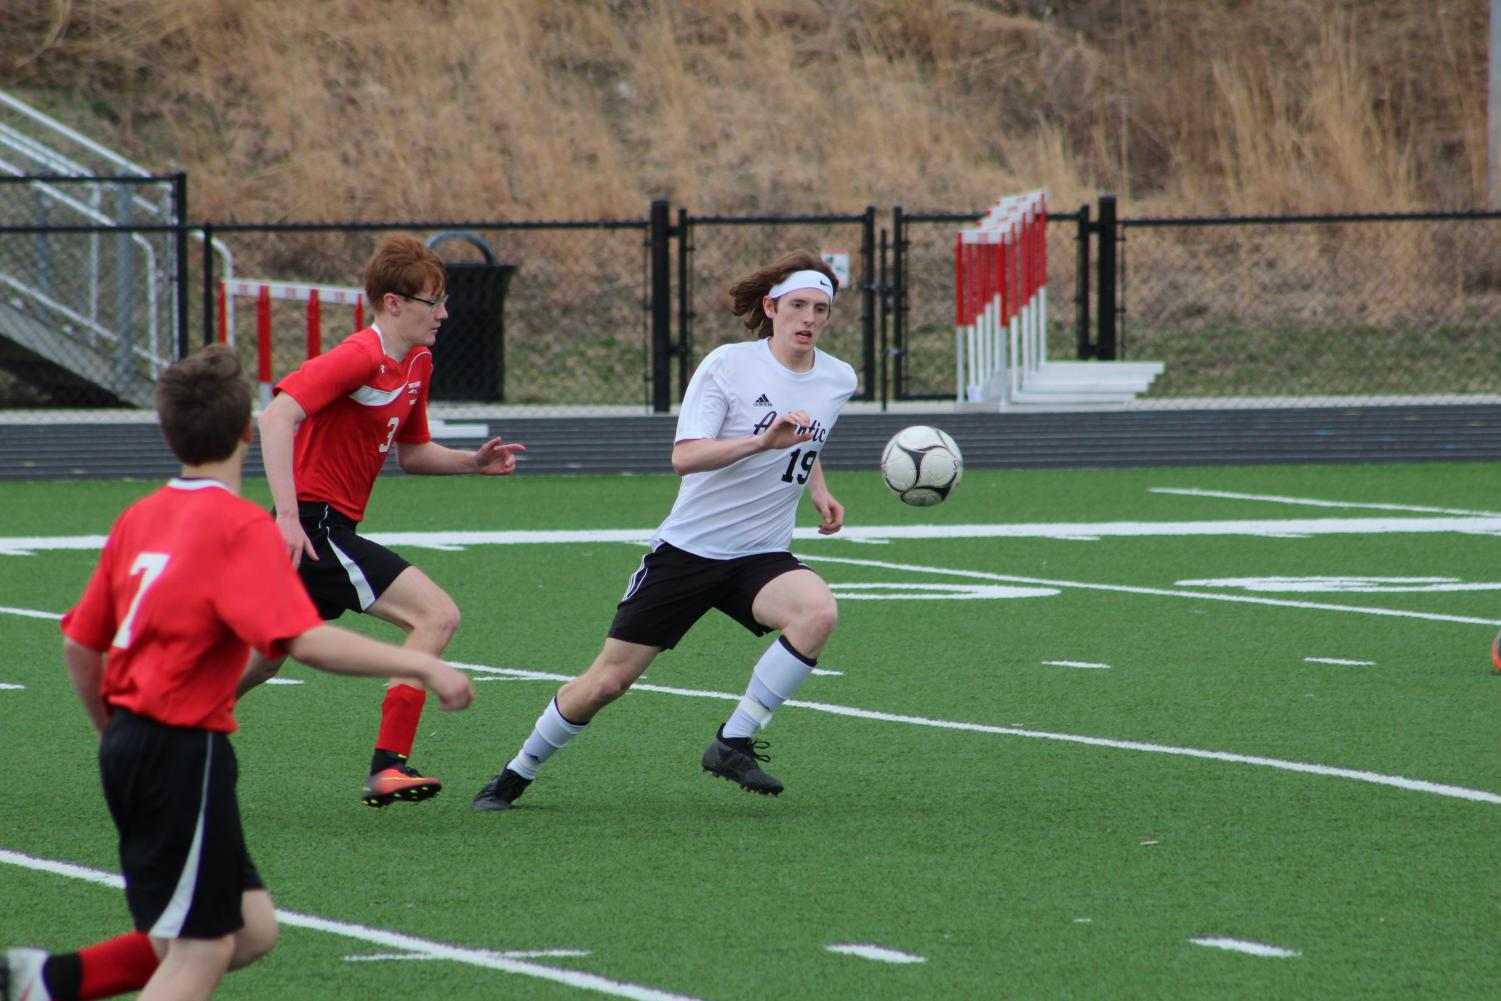 NOT ON MY WATCH - Junior Jackson Mullin races to beat his opponent to the ball. Mullin plays defense for the Trojans and has participated in soccer since his freshman year.